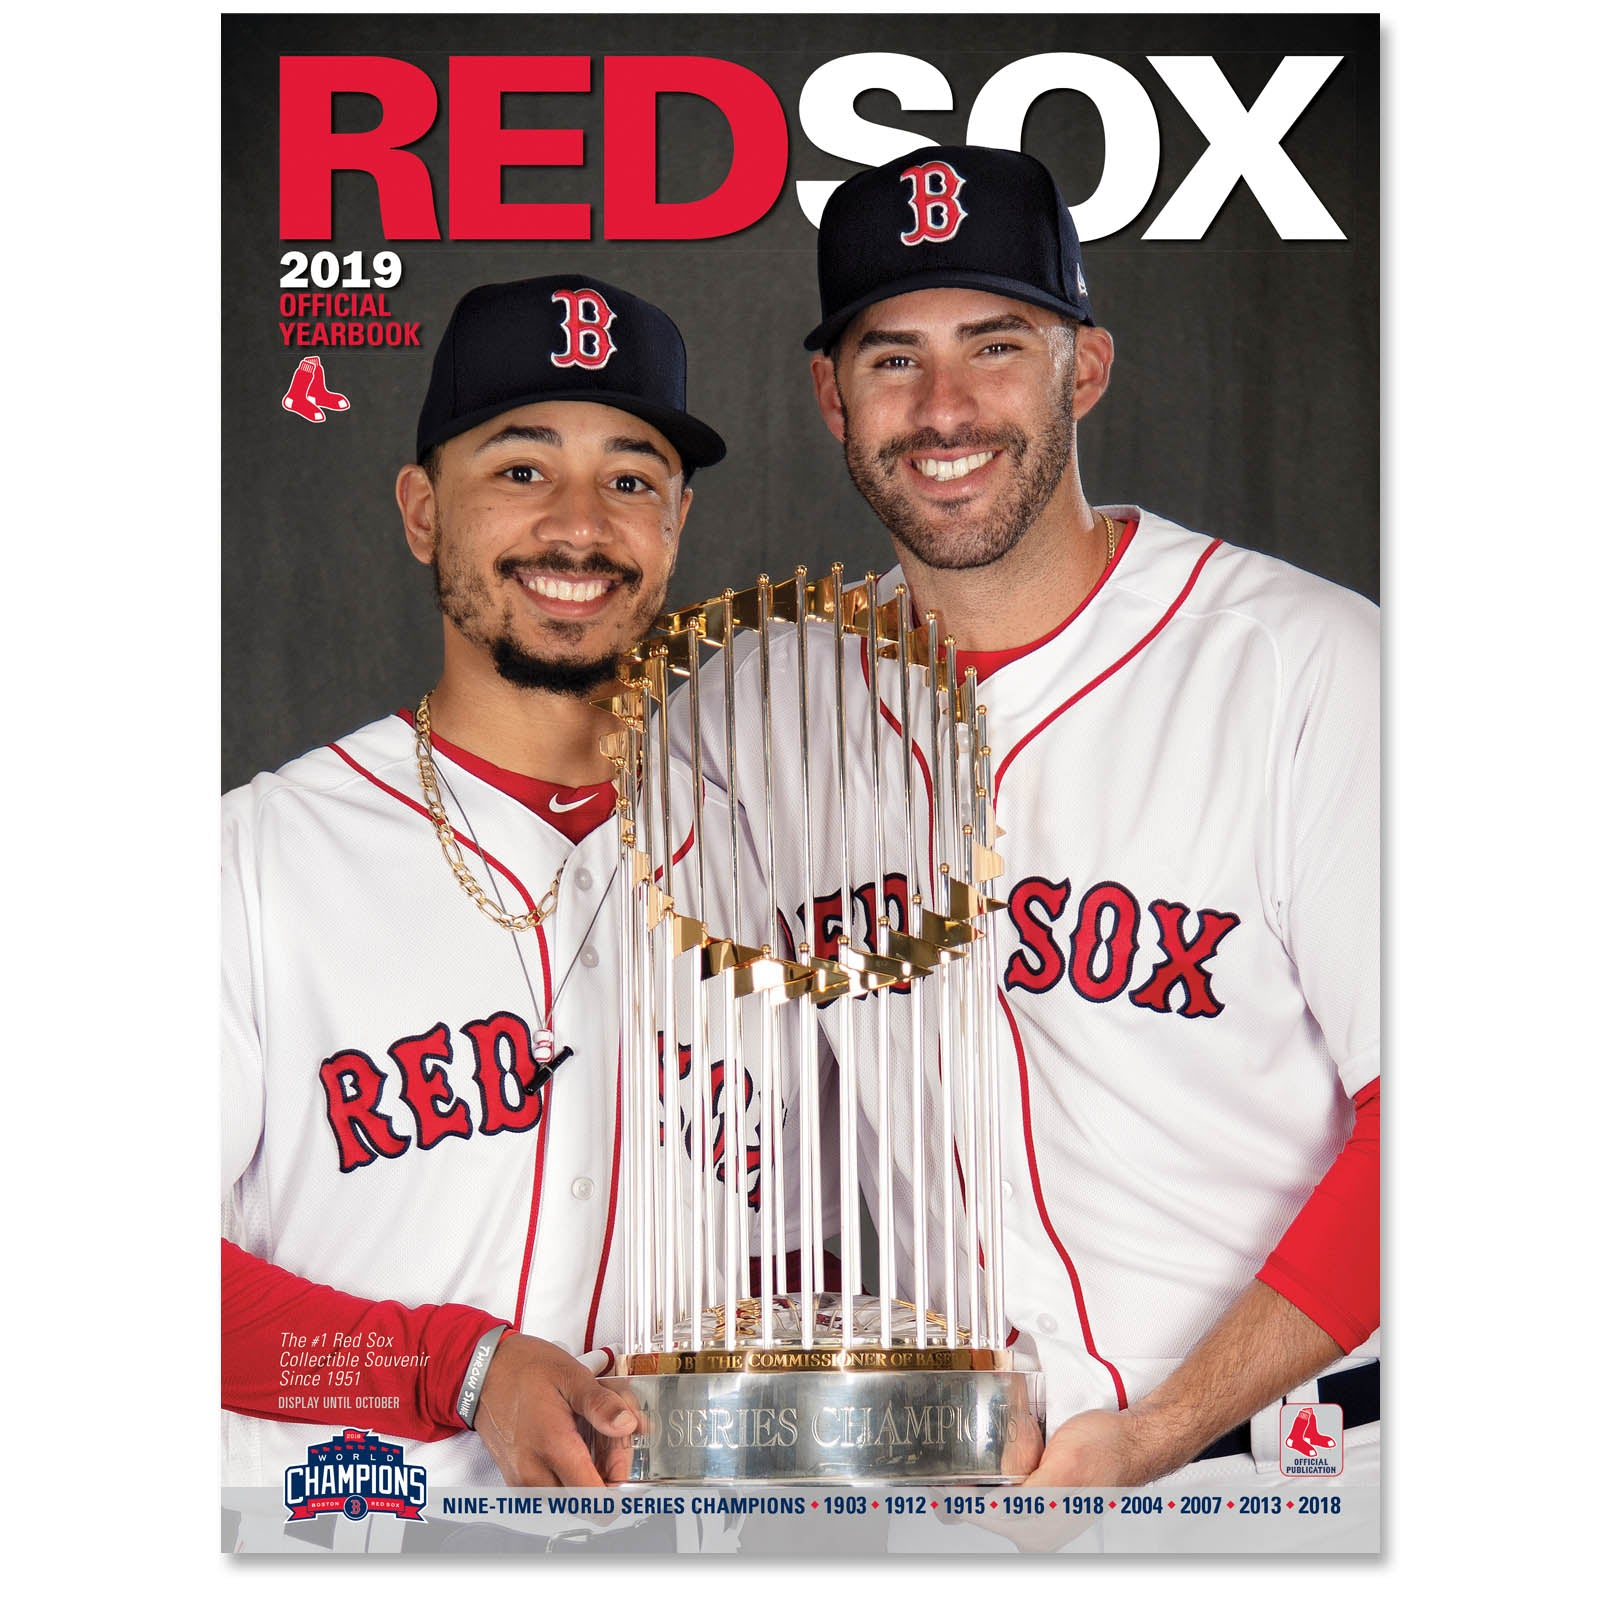 e92105626 Boston Red Sox 2019 Yearbook